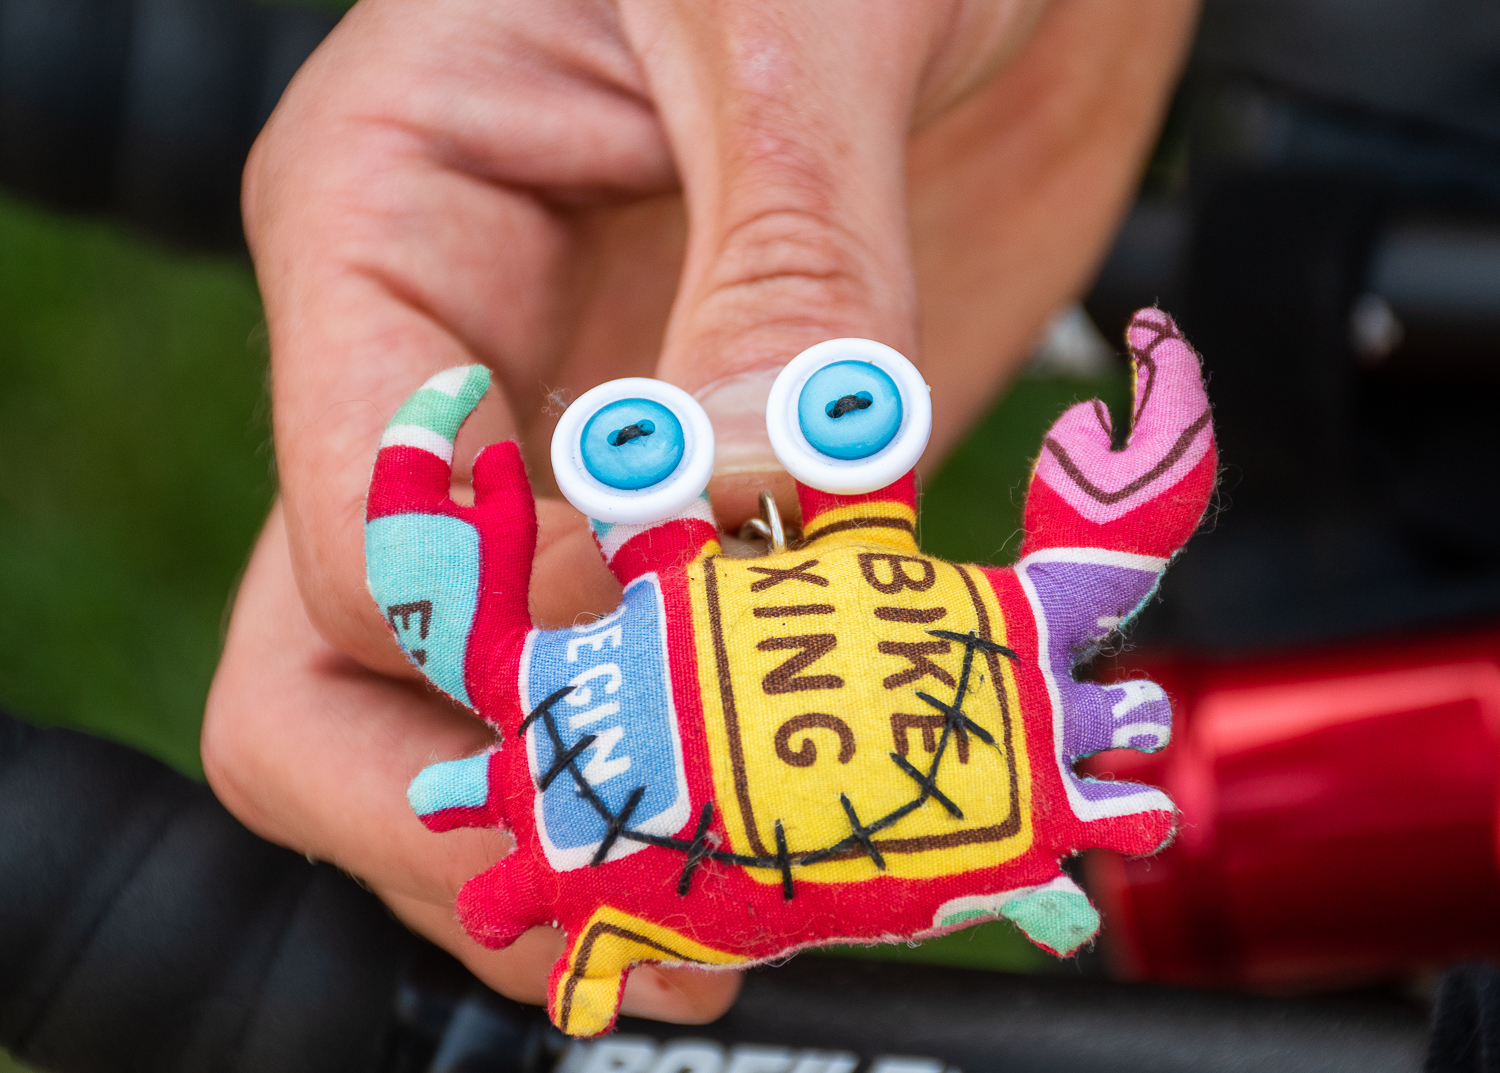 Detail of a colorful stuffed crab key chain.